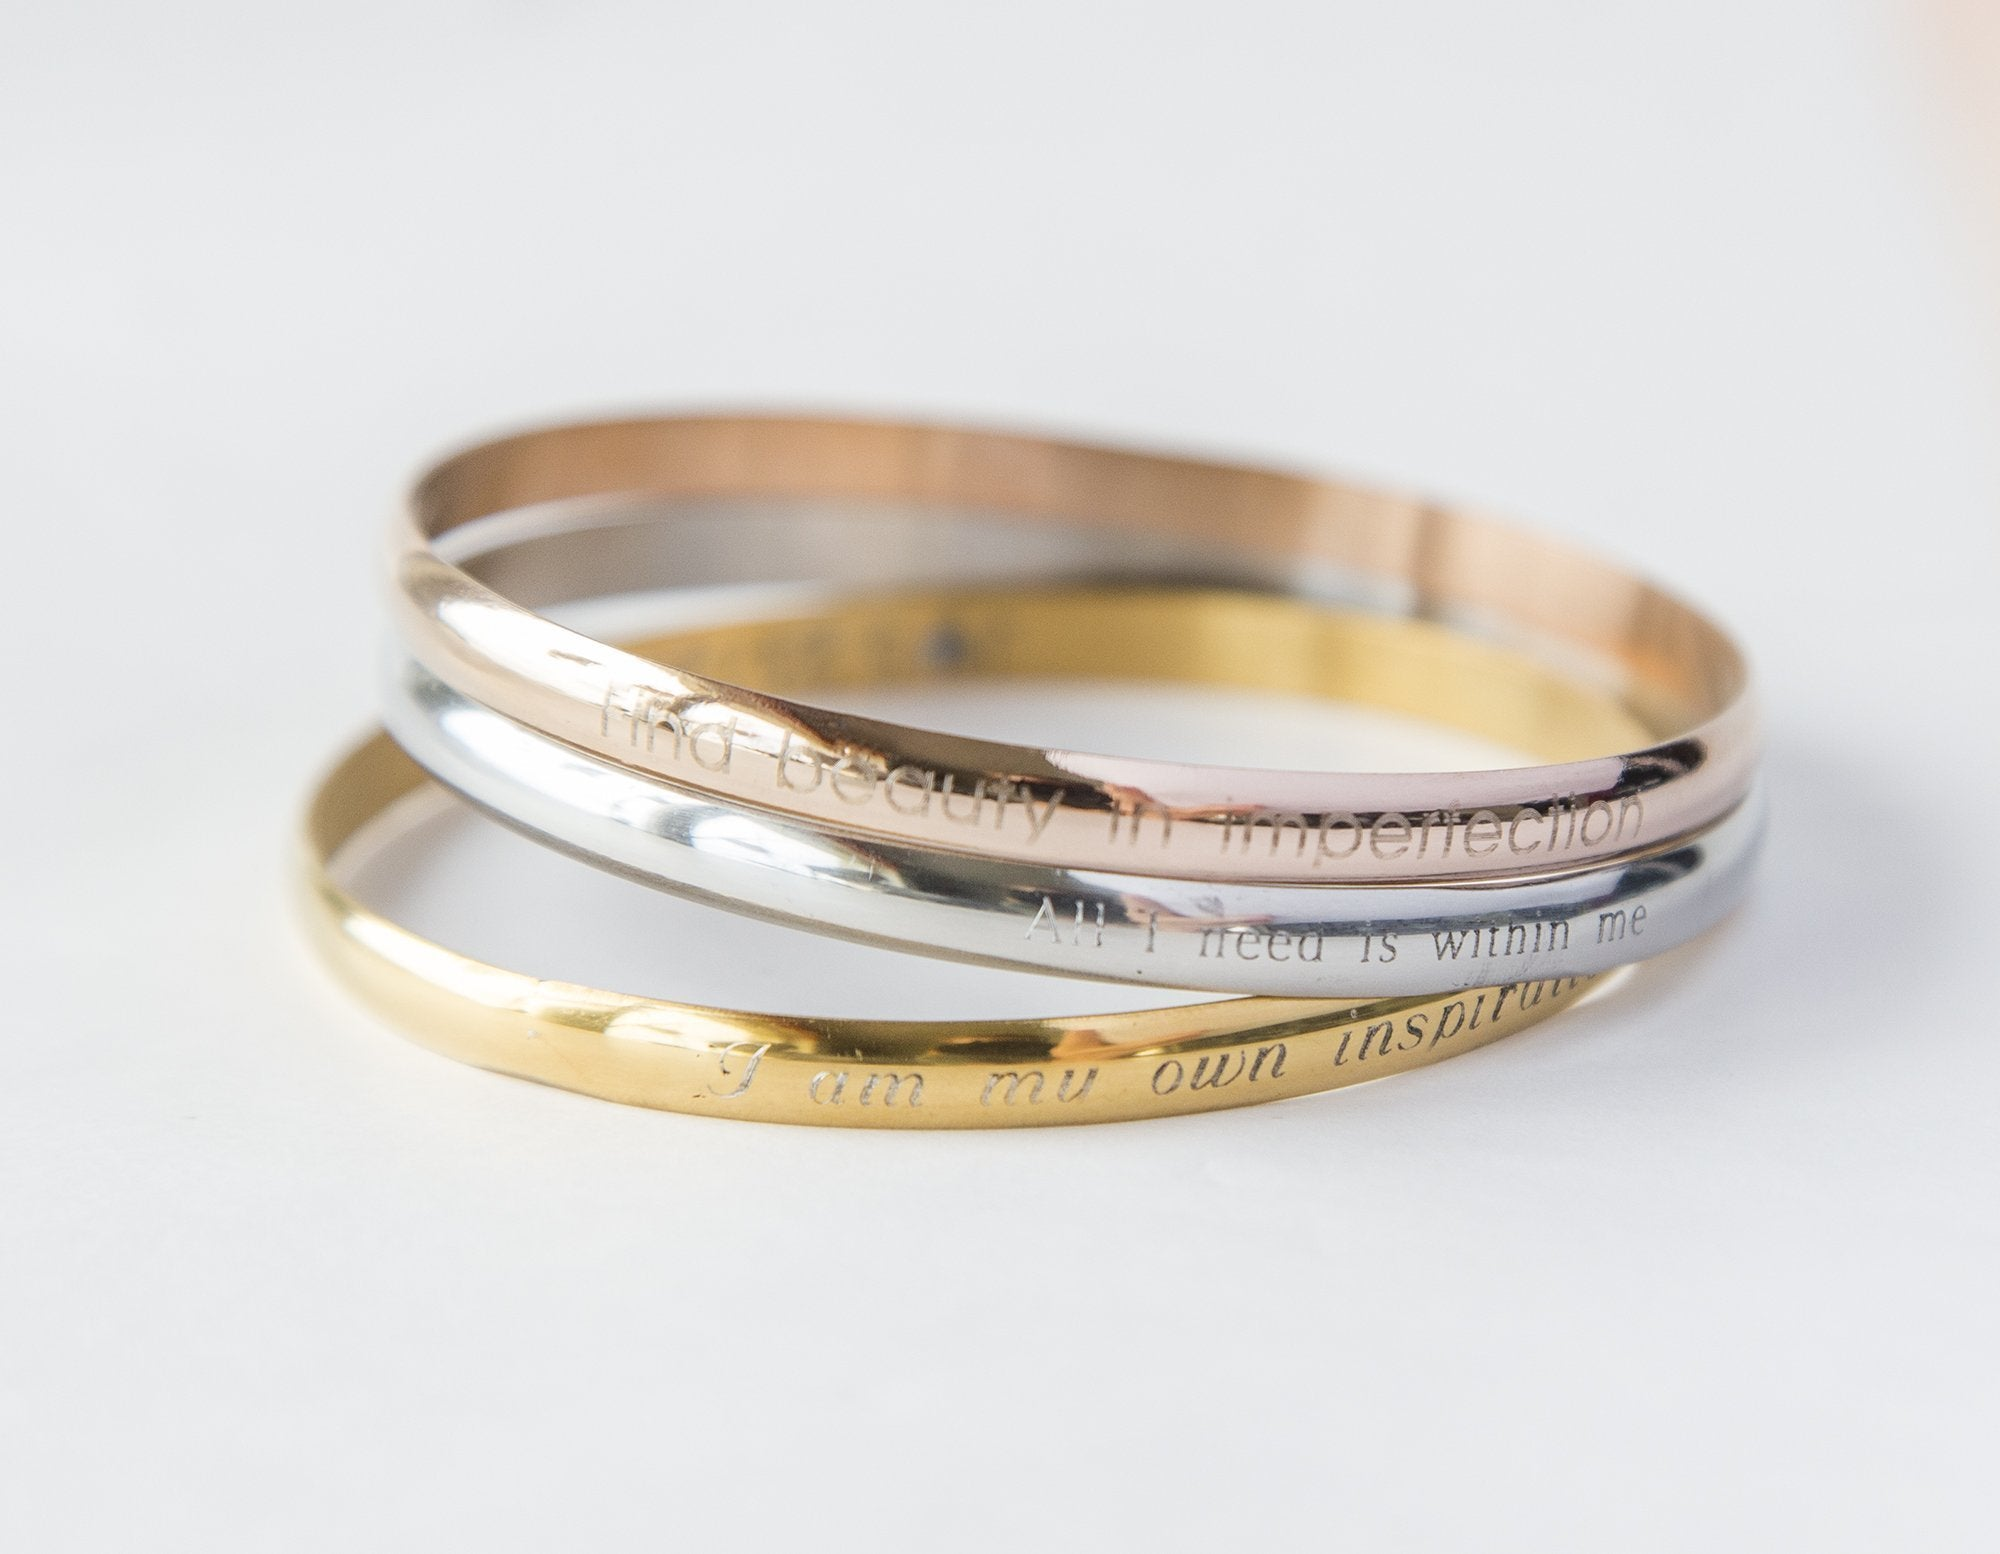 Engrave Your Own Personalized Bracelet - Delicate Bracelet with Round Edges - Studio Cosmica